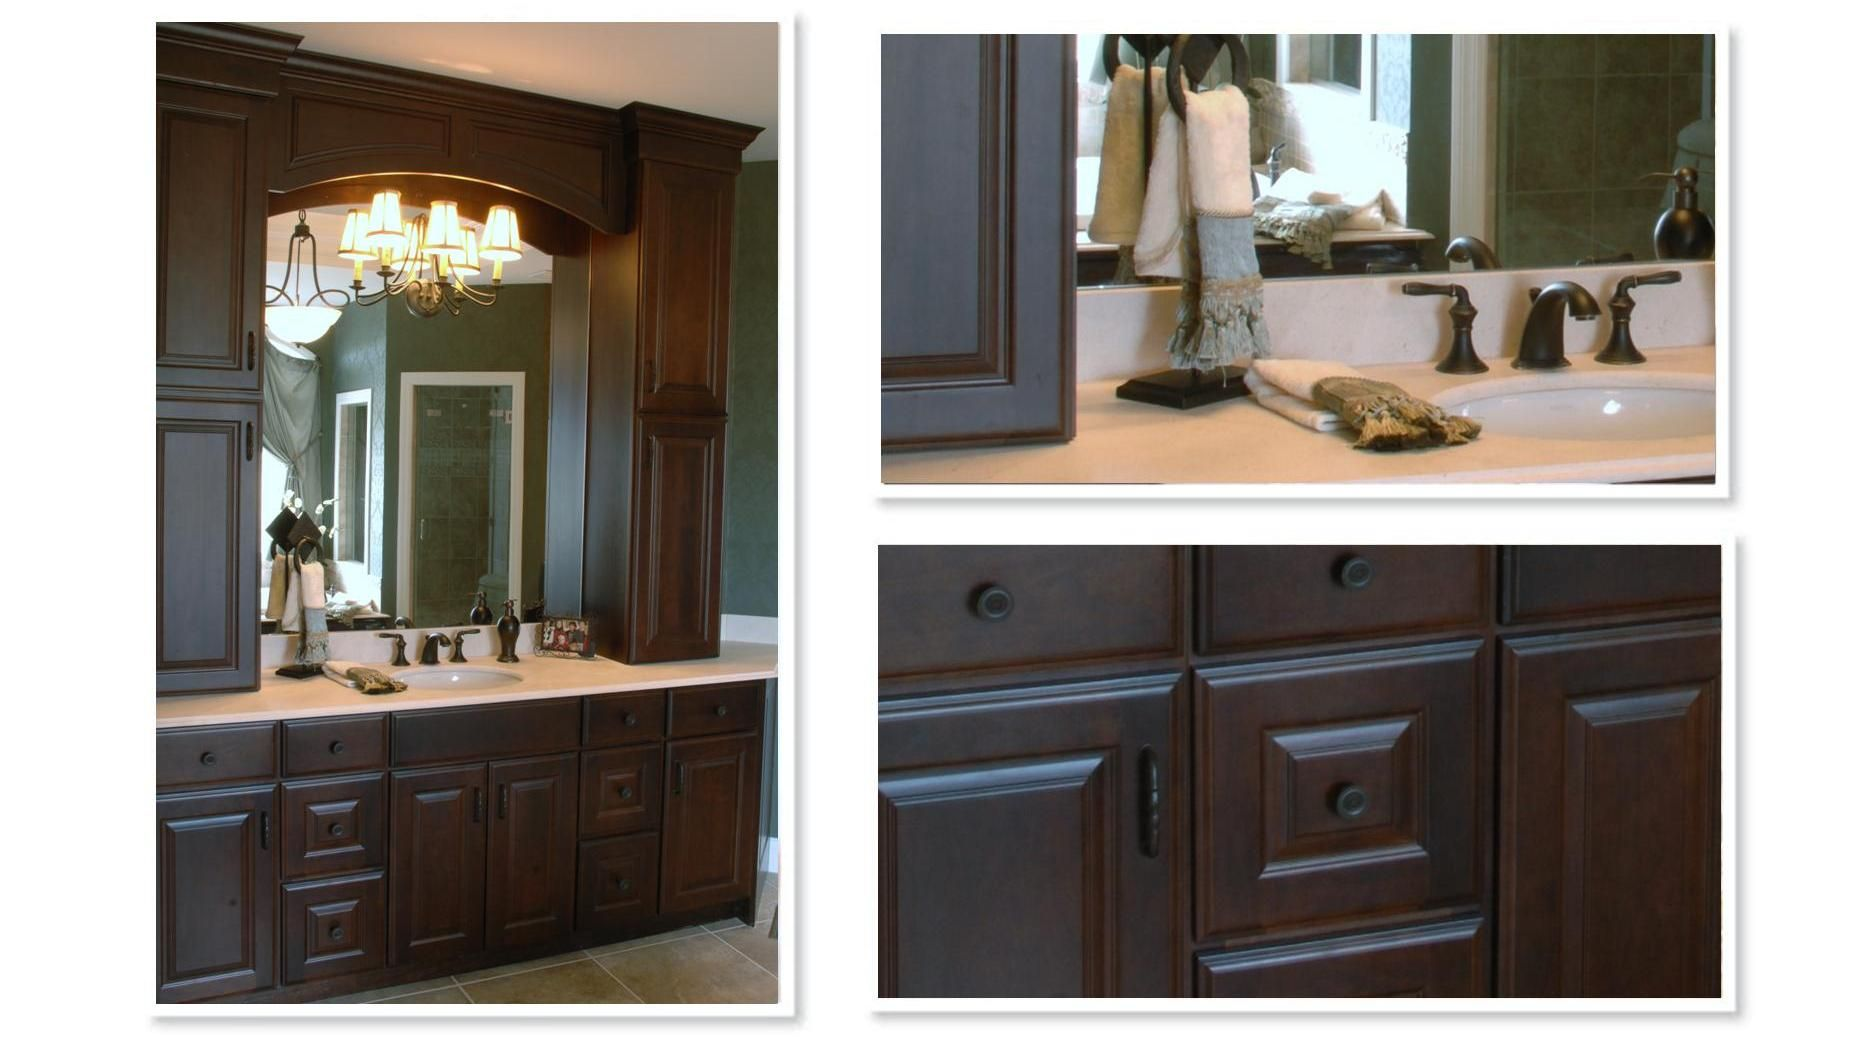 Dark Hardware On Cabinets With Oil Rubbed Bronze Light Fixture And Faucets For Hall Bathroom